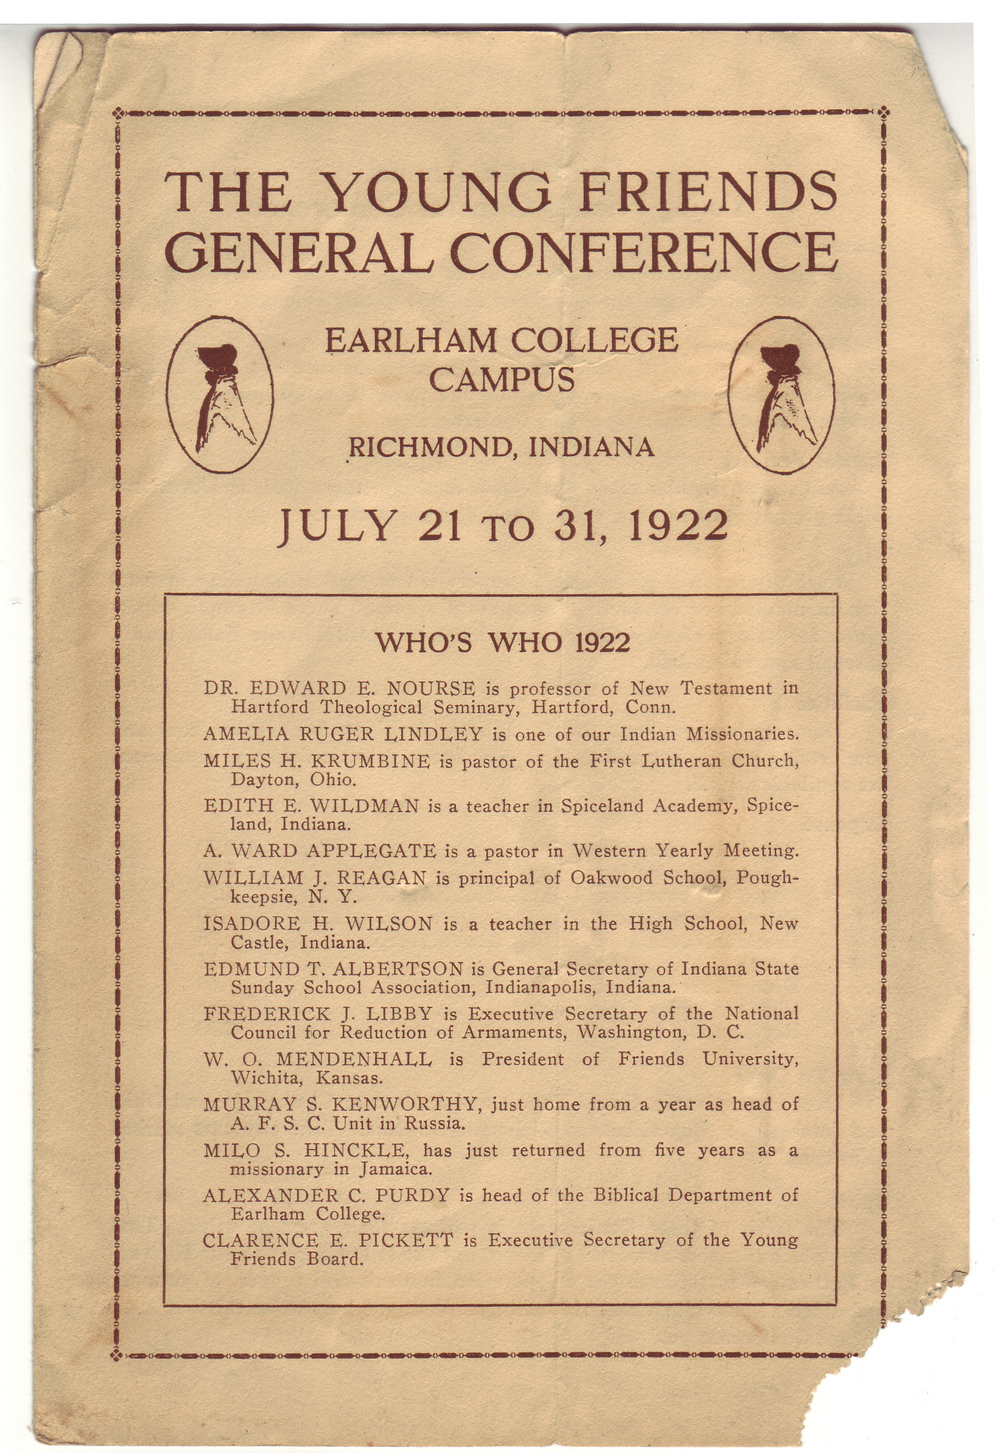 The original program from the Young Friends General Conference held in 1922